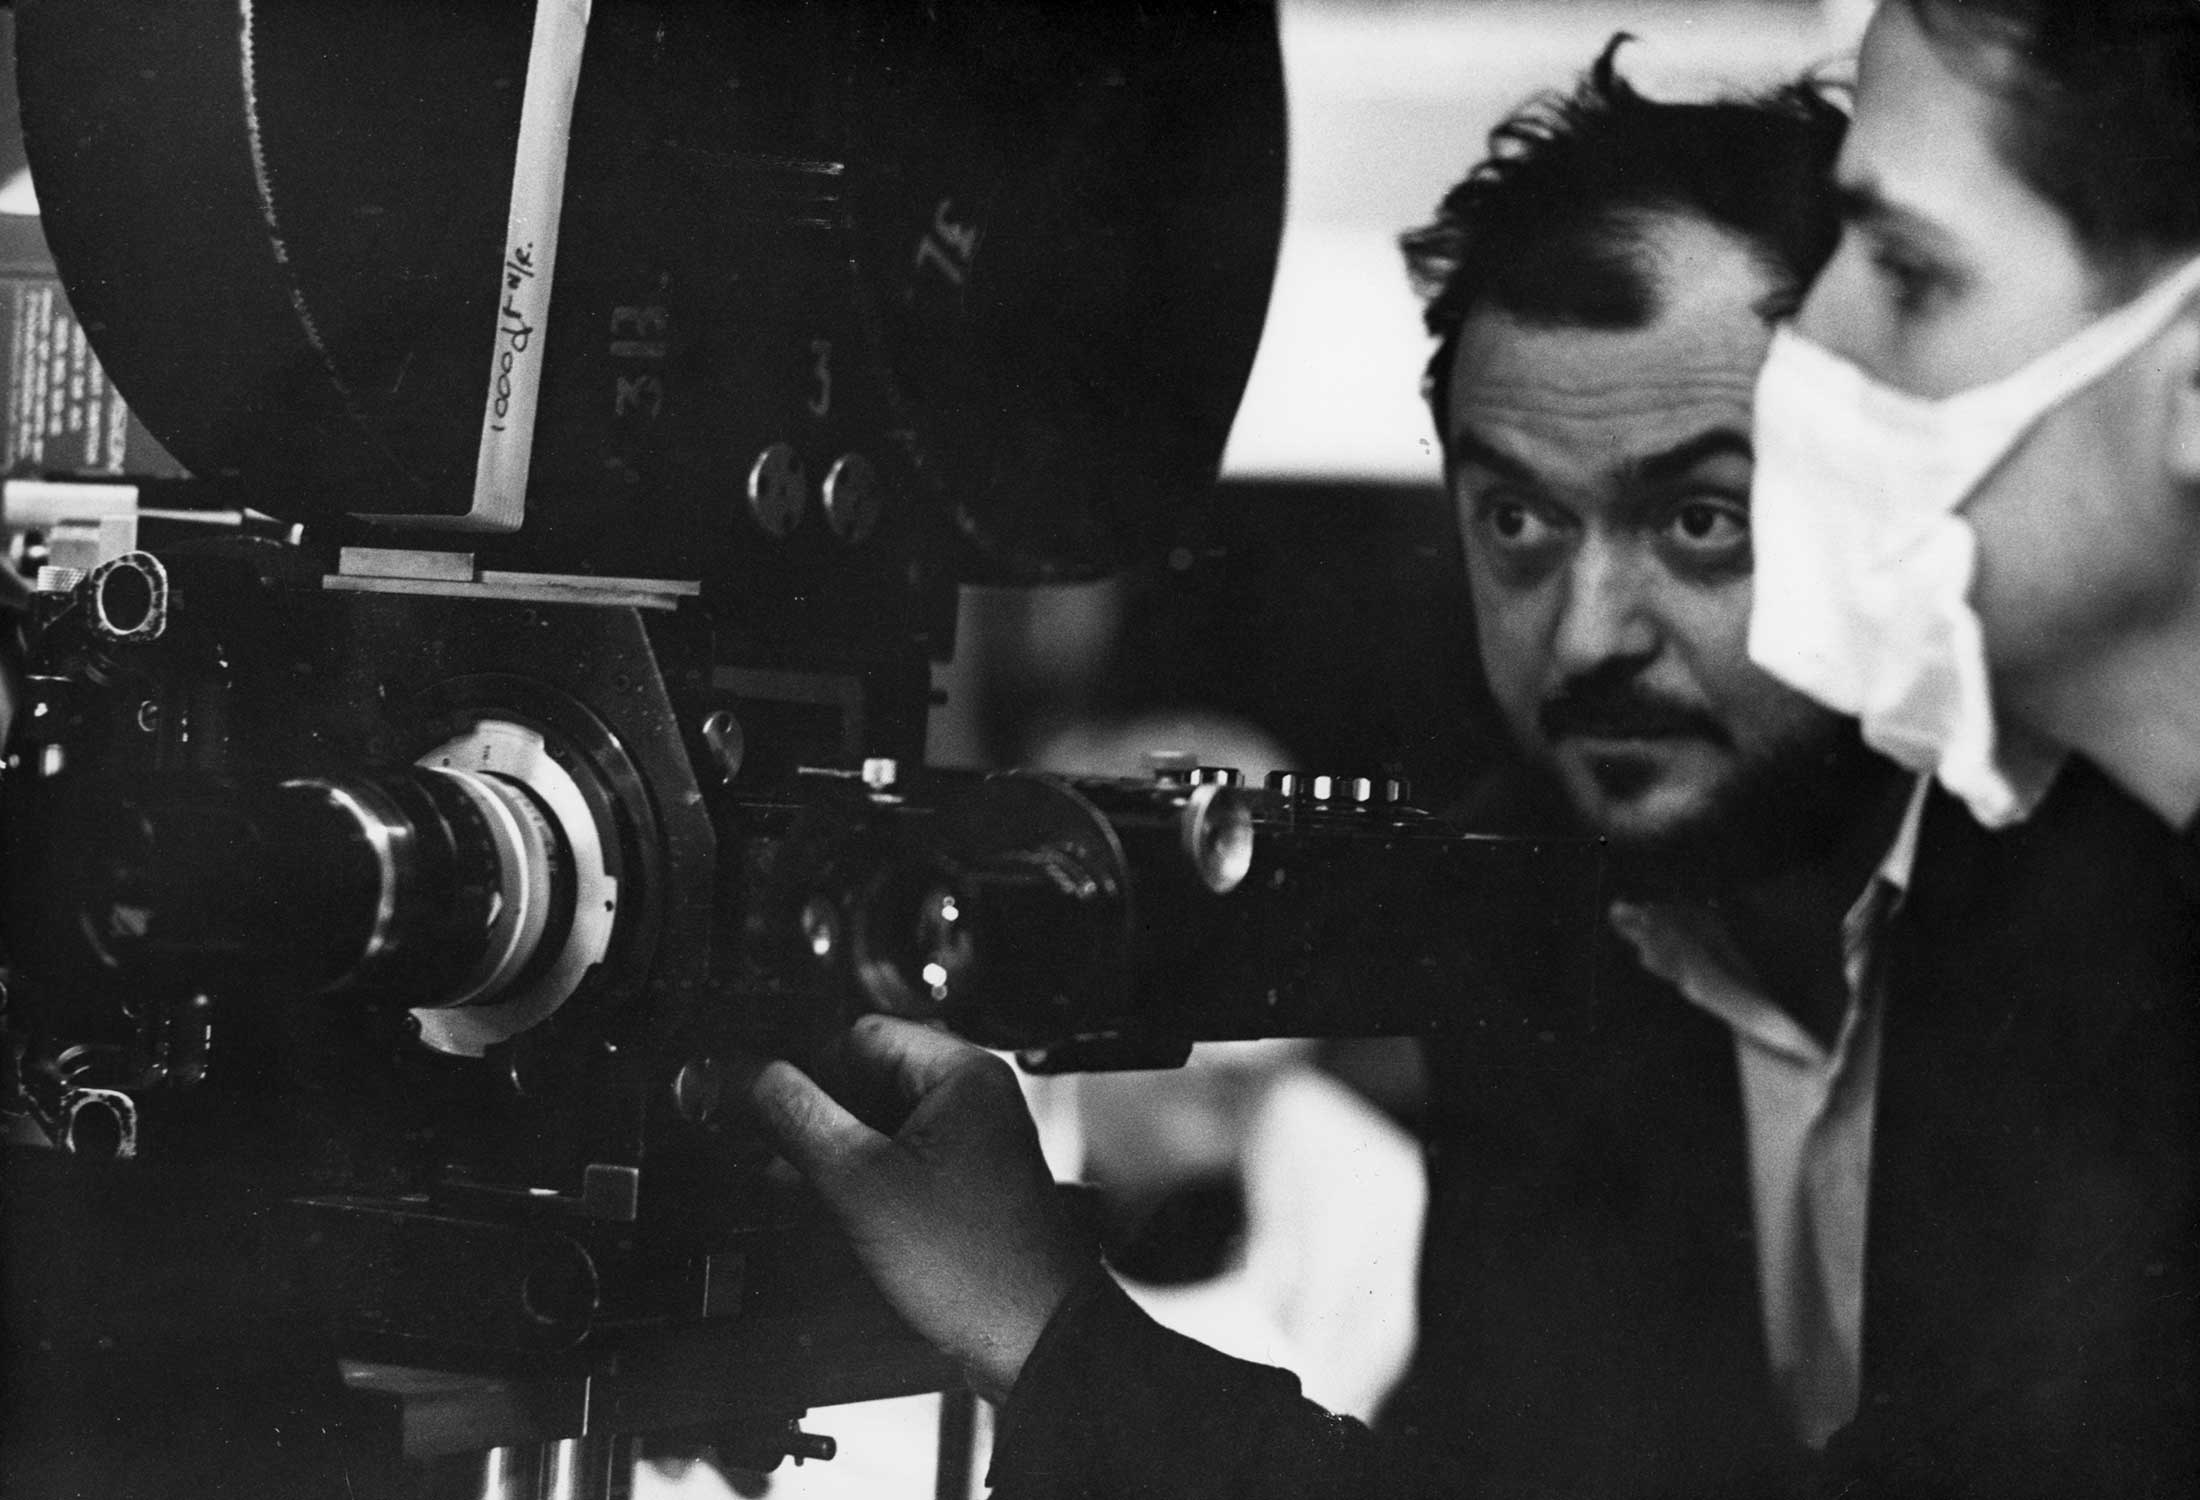 an introduction to the life of stanley kubrick a filmmaker Filmography and awards of stanley kubrick stanley kubrick directed 13 feature all of stanley kubrick's films from paths of glory until the end of his career and another life-achievement award from the director's guild of great britain posthumously.